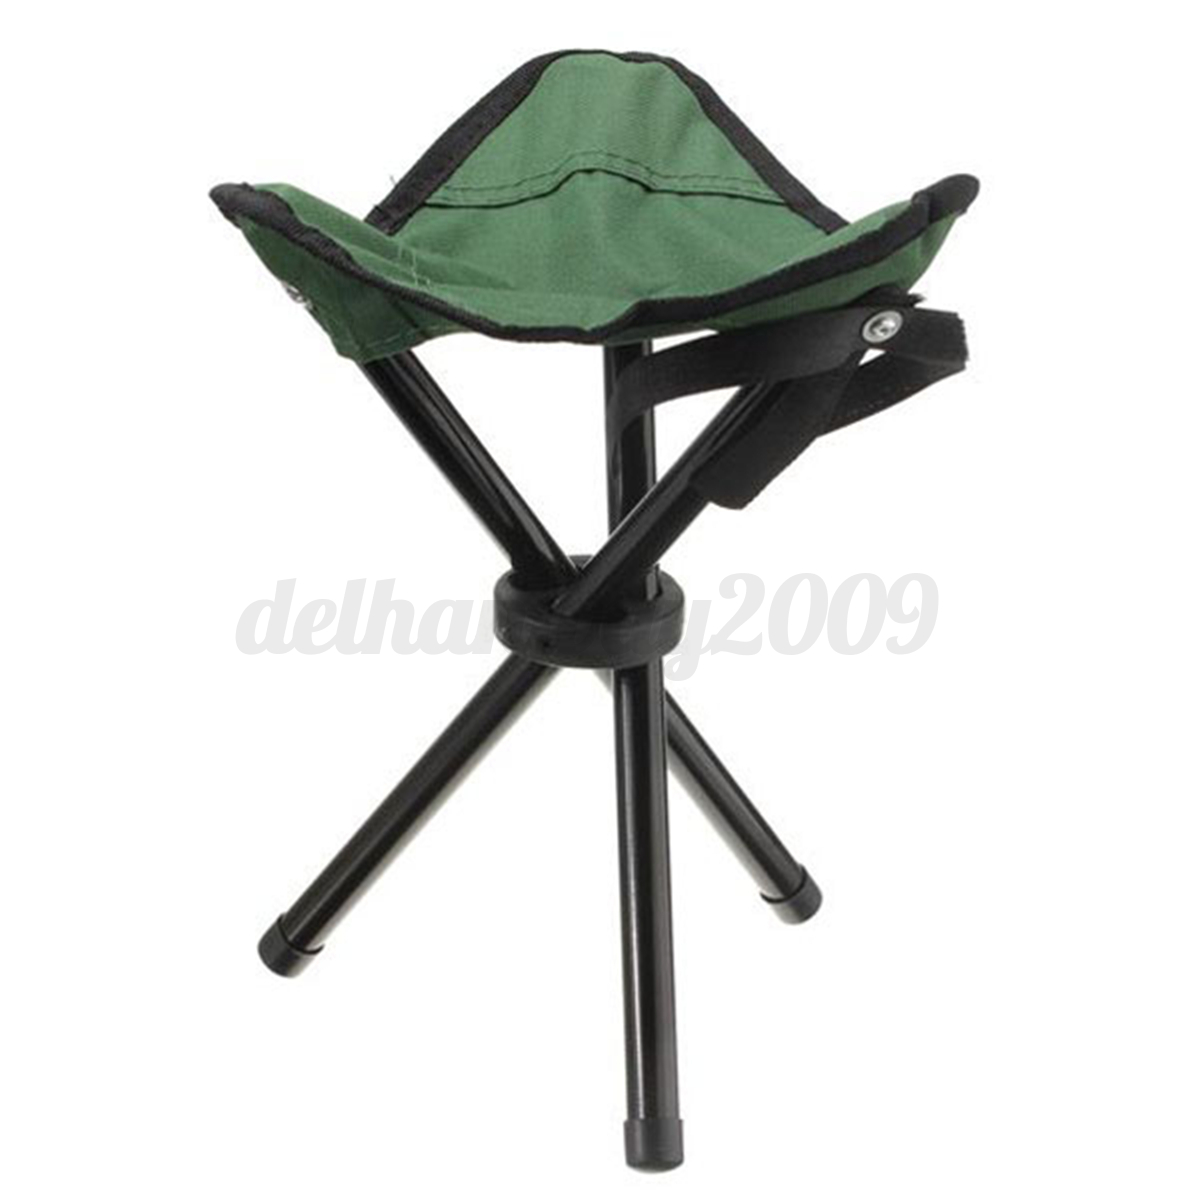 Collapsible Chair Folding Chair Collapsible Tripod Seat For Outdoor Camping